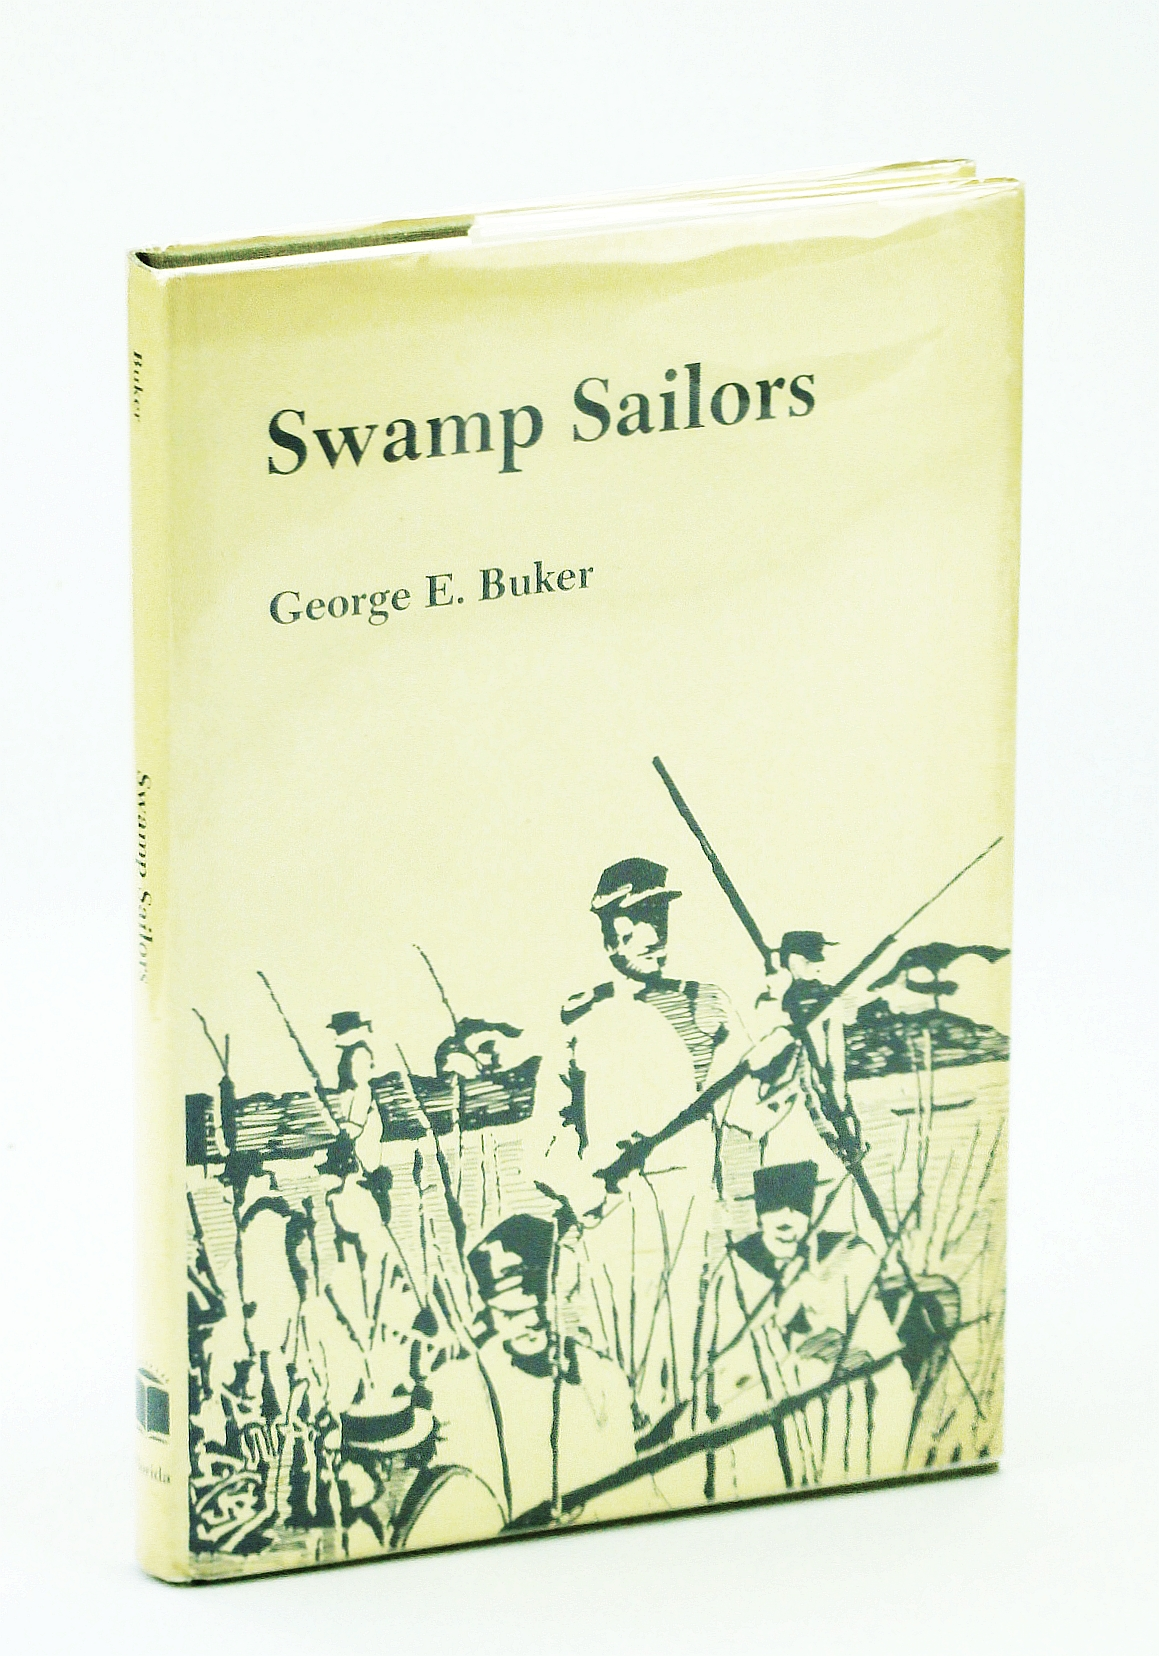 Image for Swamp Sailors: Riverine Warfare in the Everglades, 1835-1842